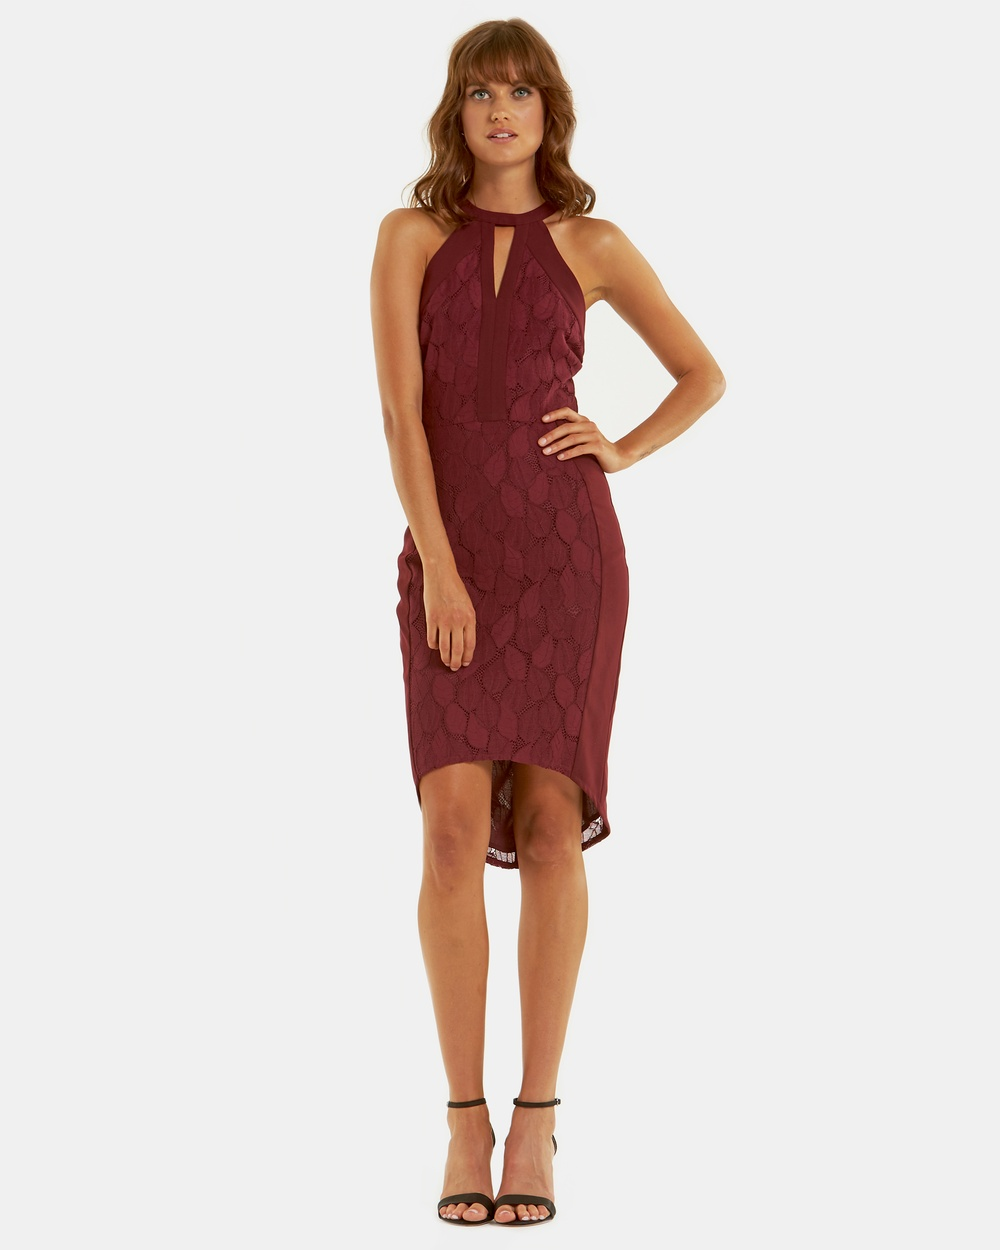 Amelius Athena Lace Dress Dresses Wine Athena Lace Dress